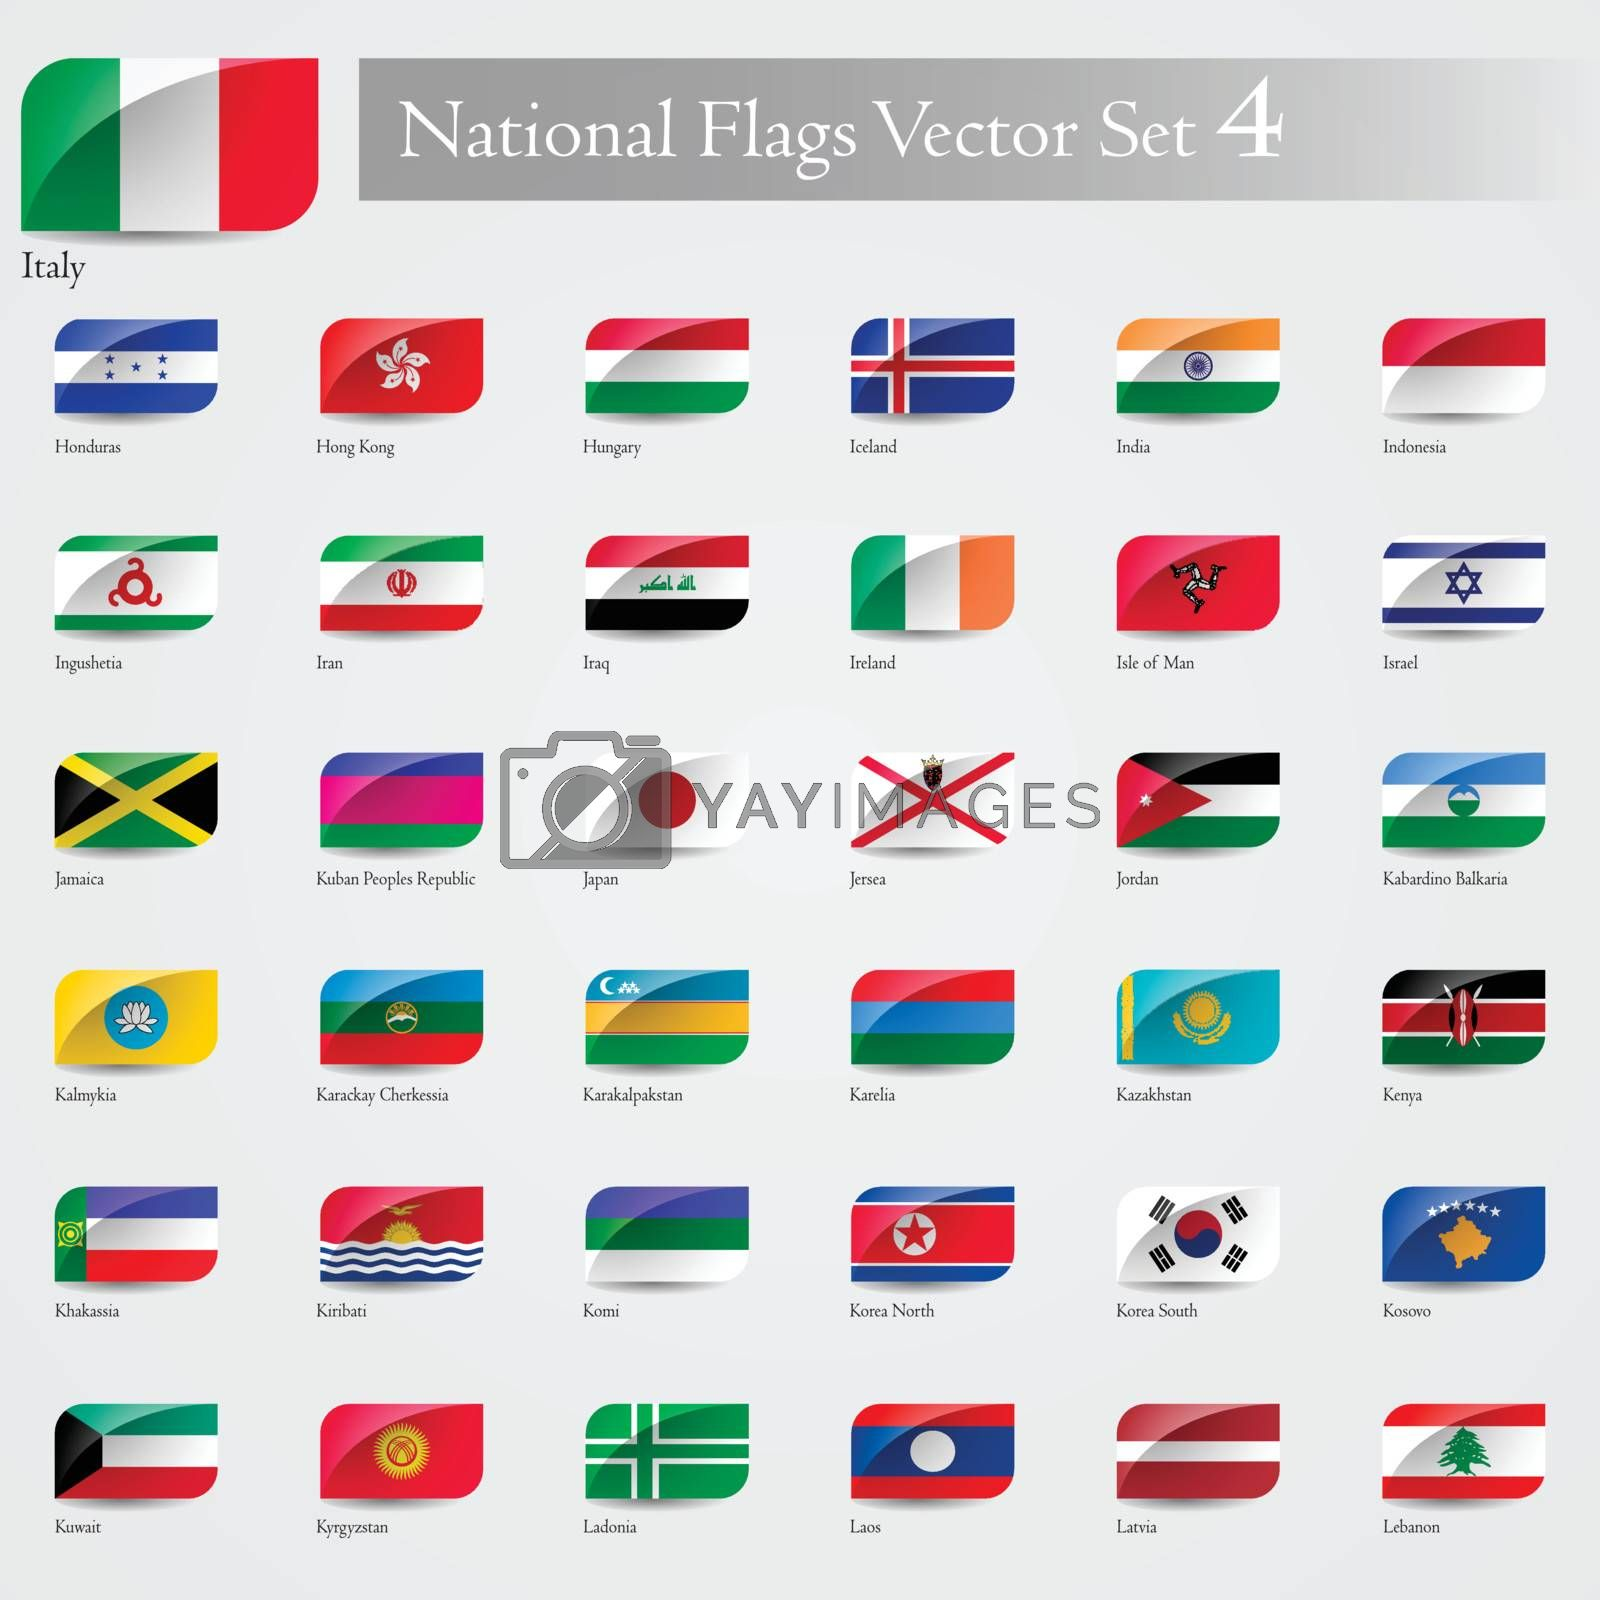 National Flags of the world emboss and round corner set 4